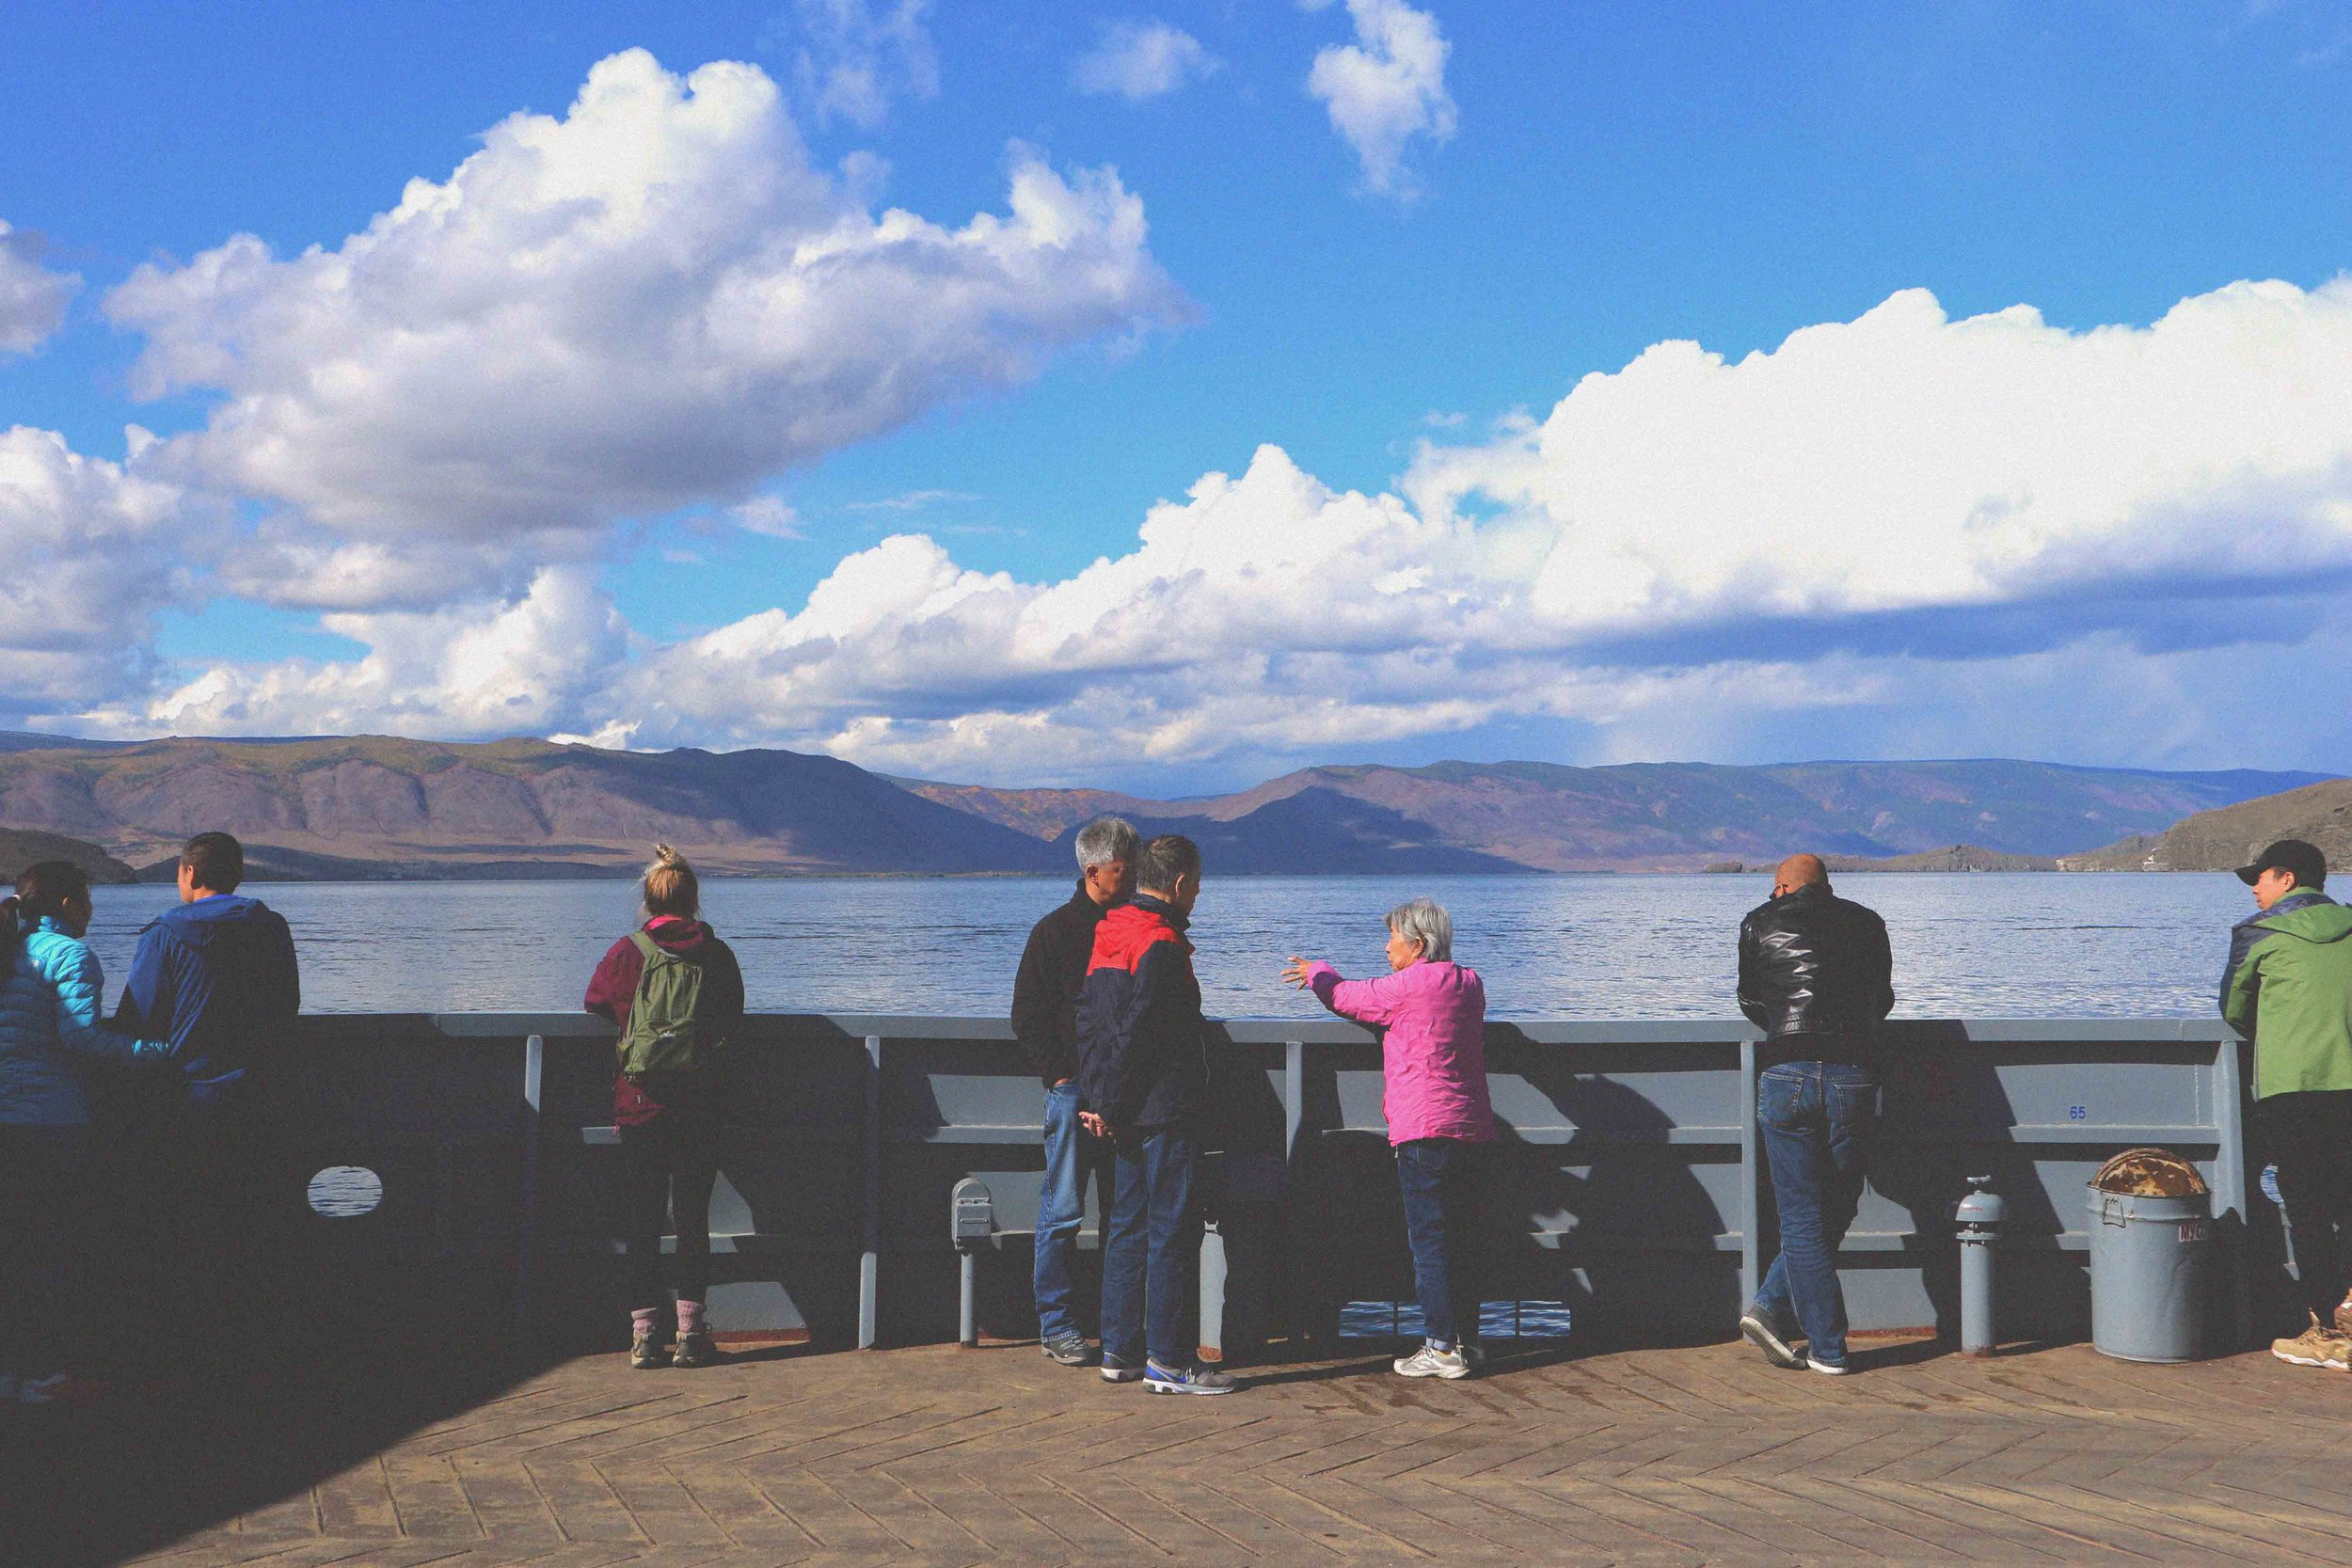 Travelling across Baikal by ferry